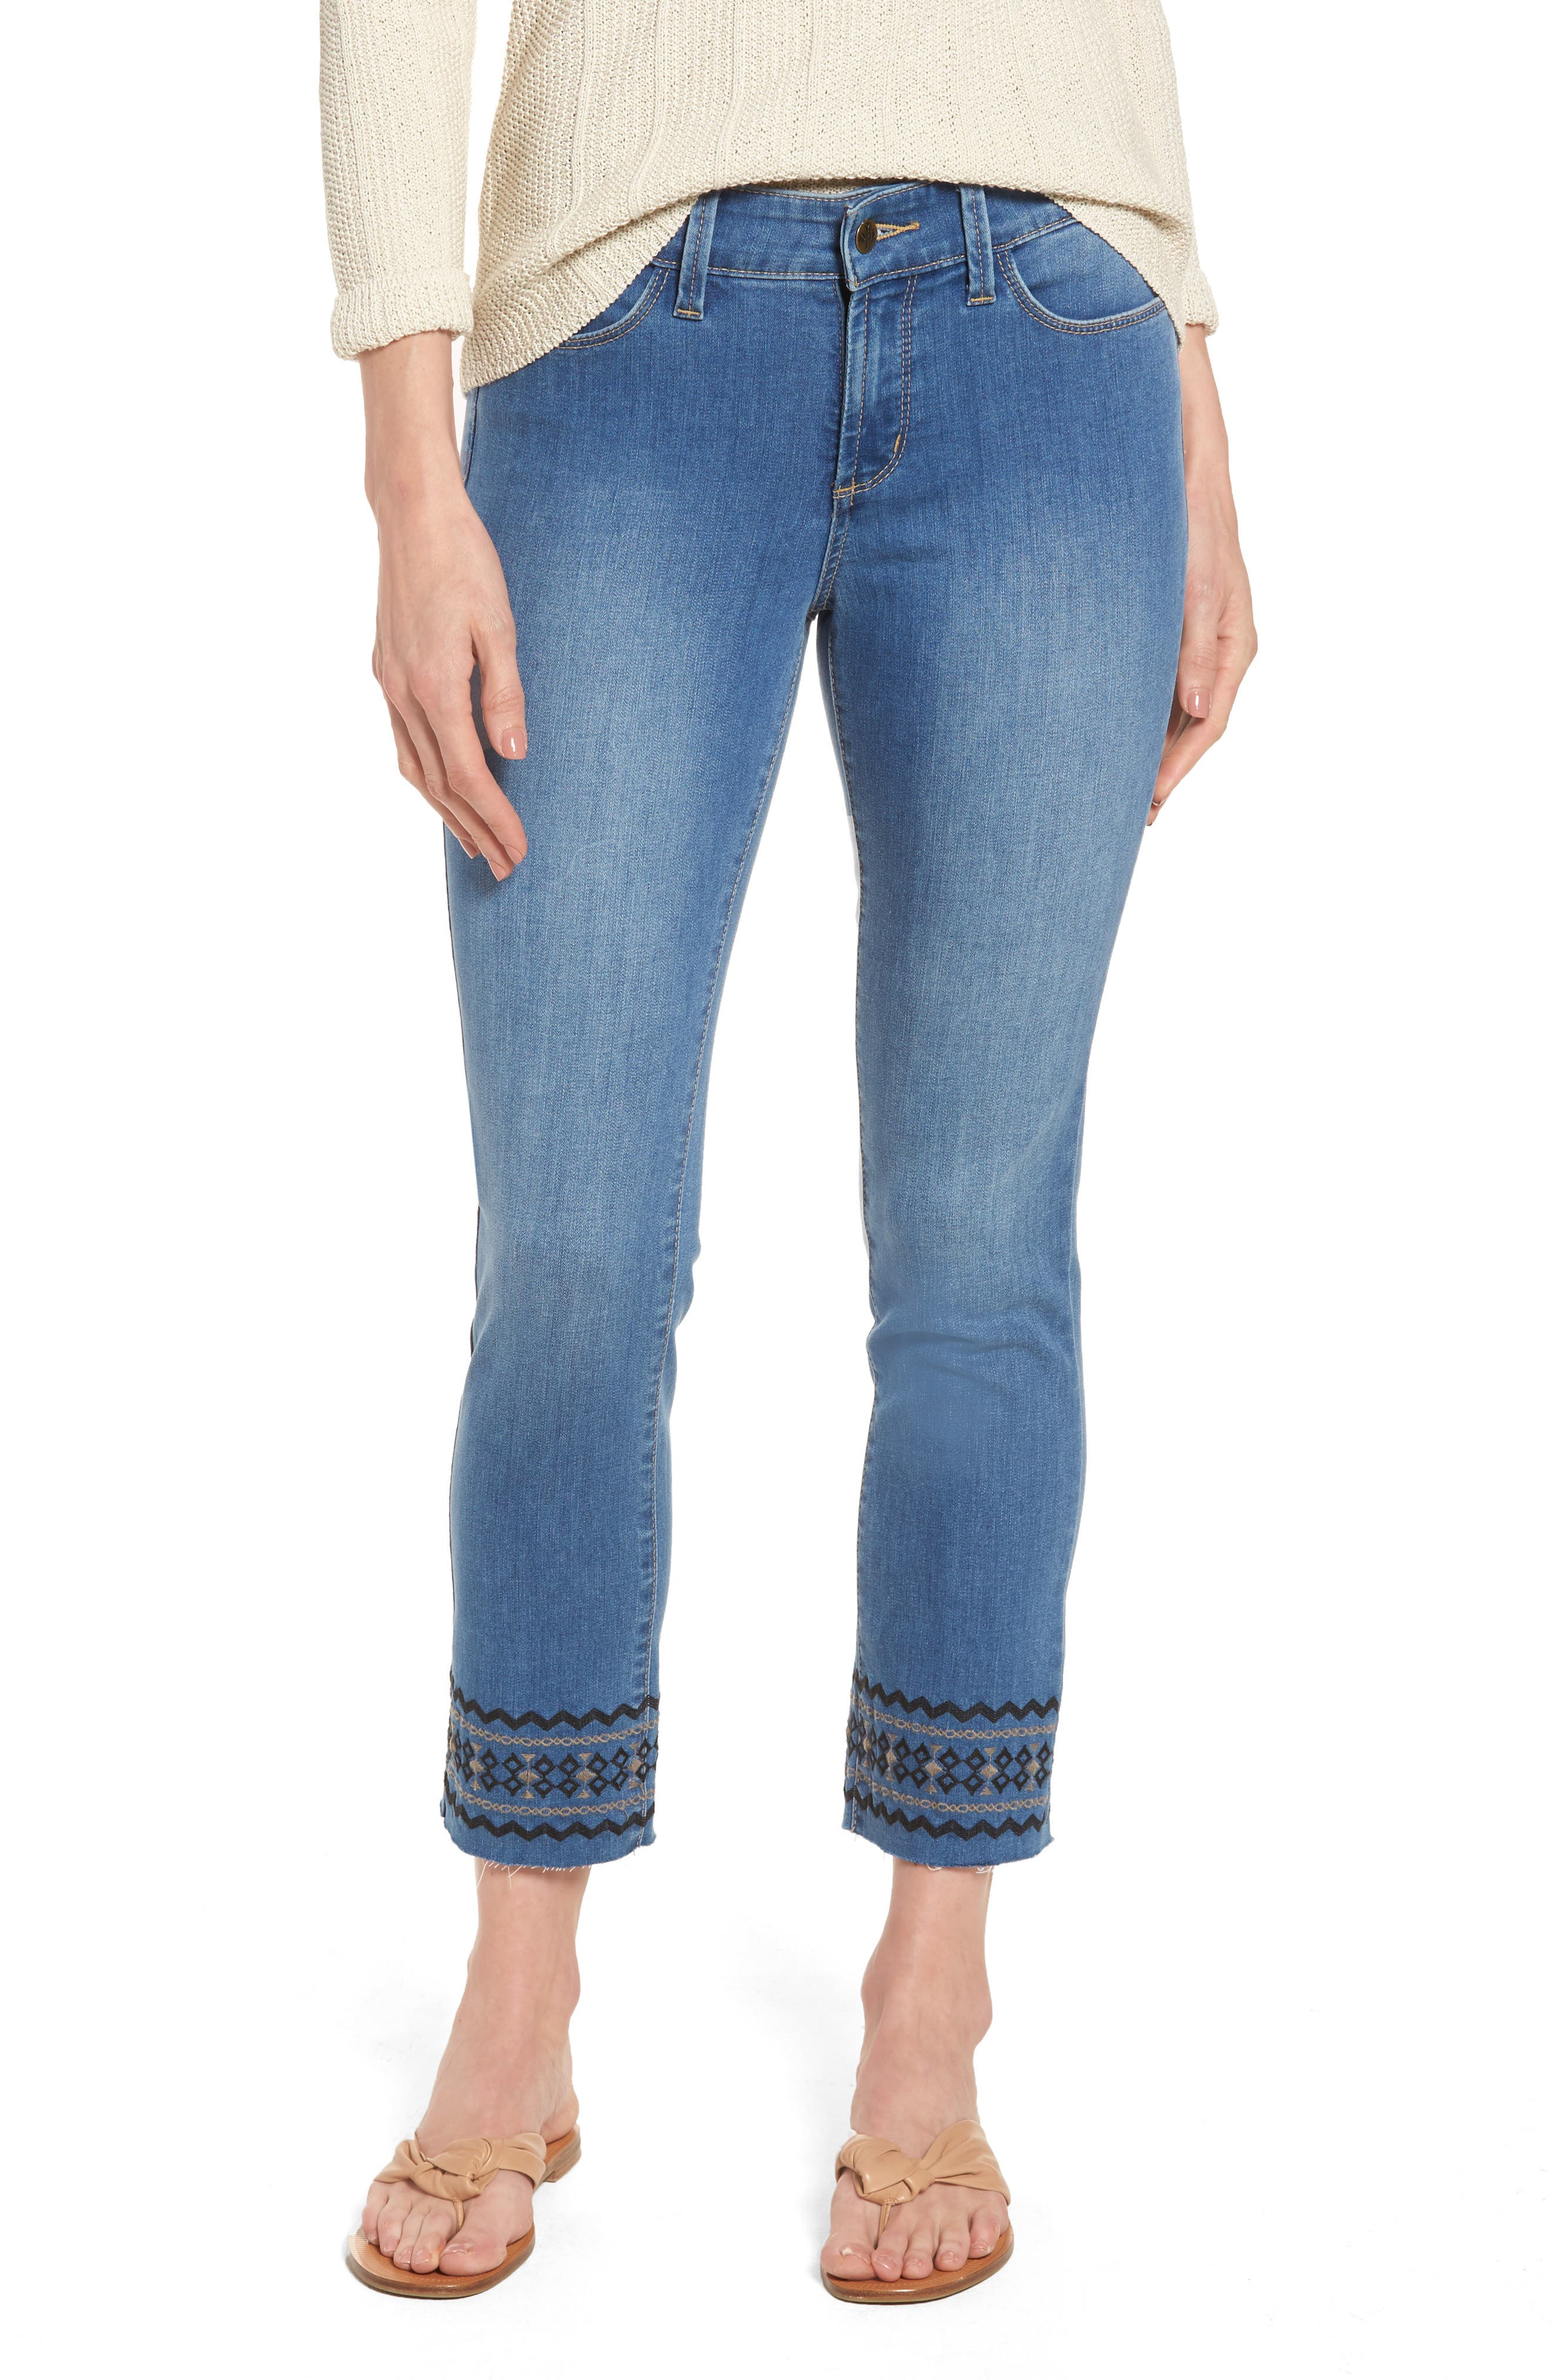 Alternate Image 1 Selected - NYDJ Sheri Embroidered Stretch Slim Crop Jeans (Evansdale)